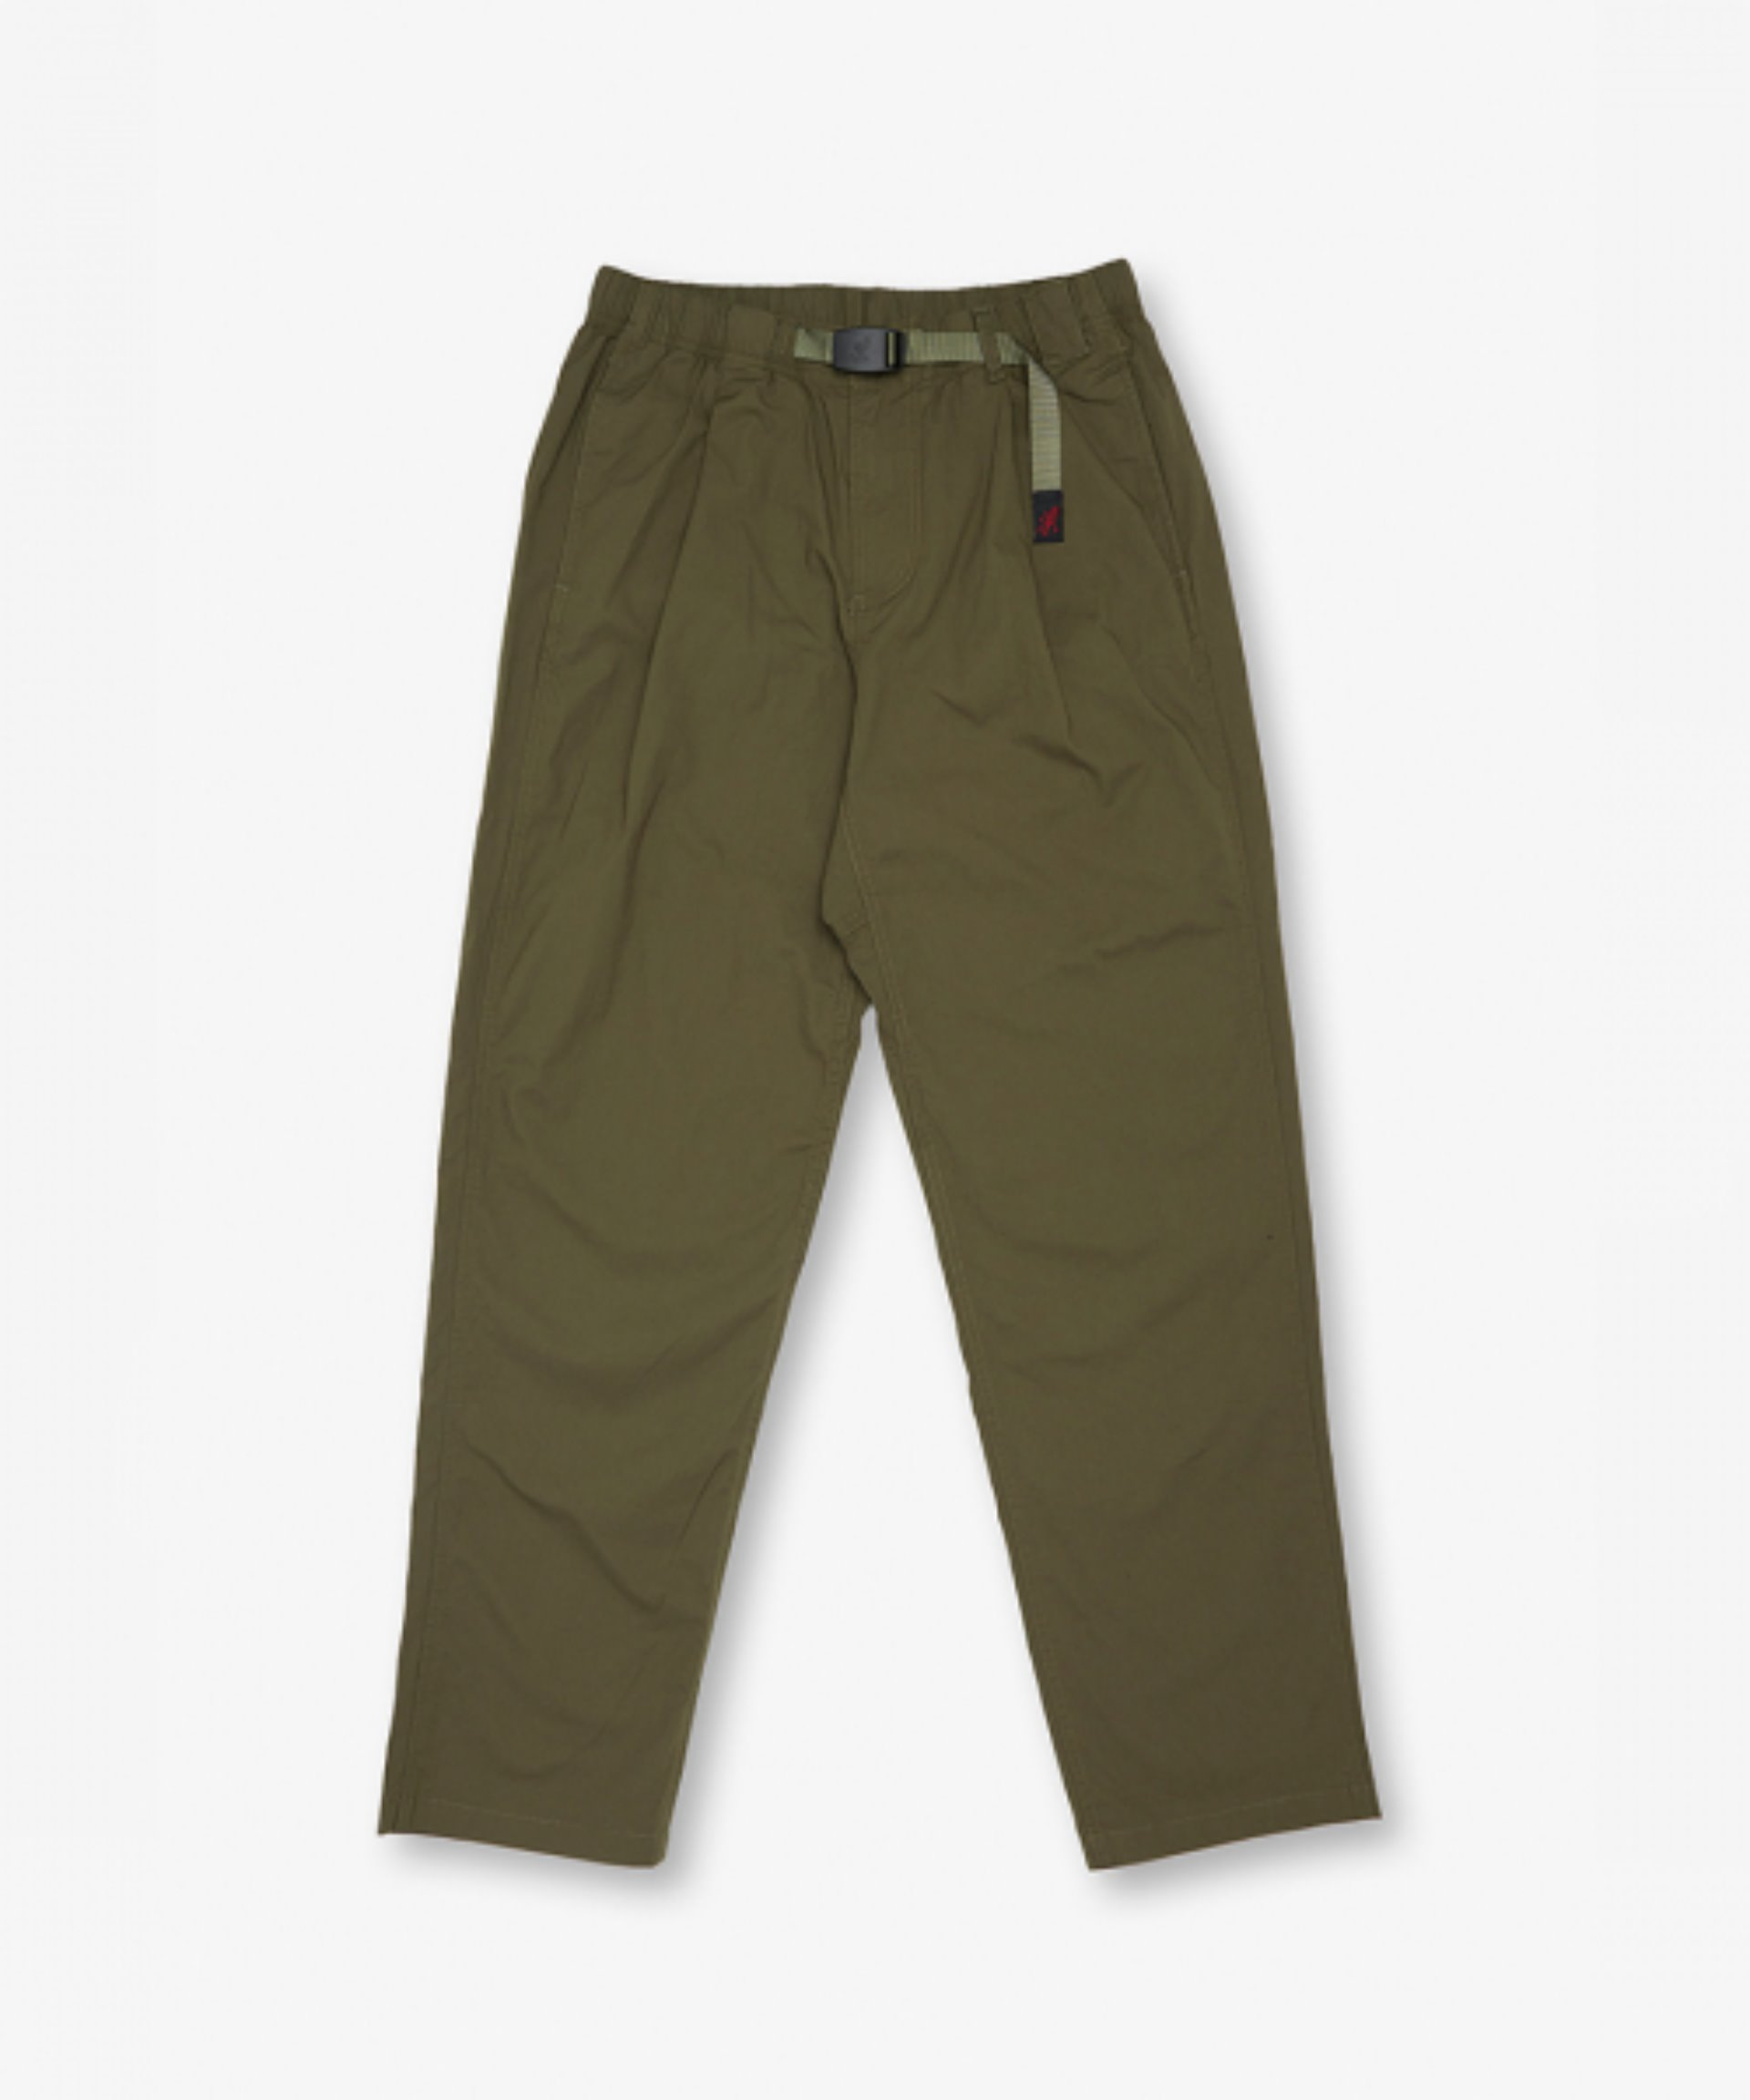 WEATHER 1 TUCK PANTS(OLIVE)